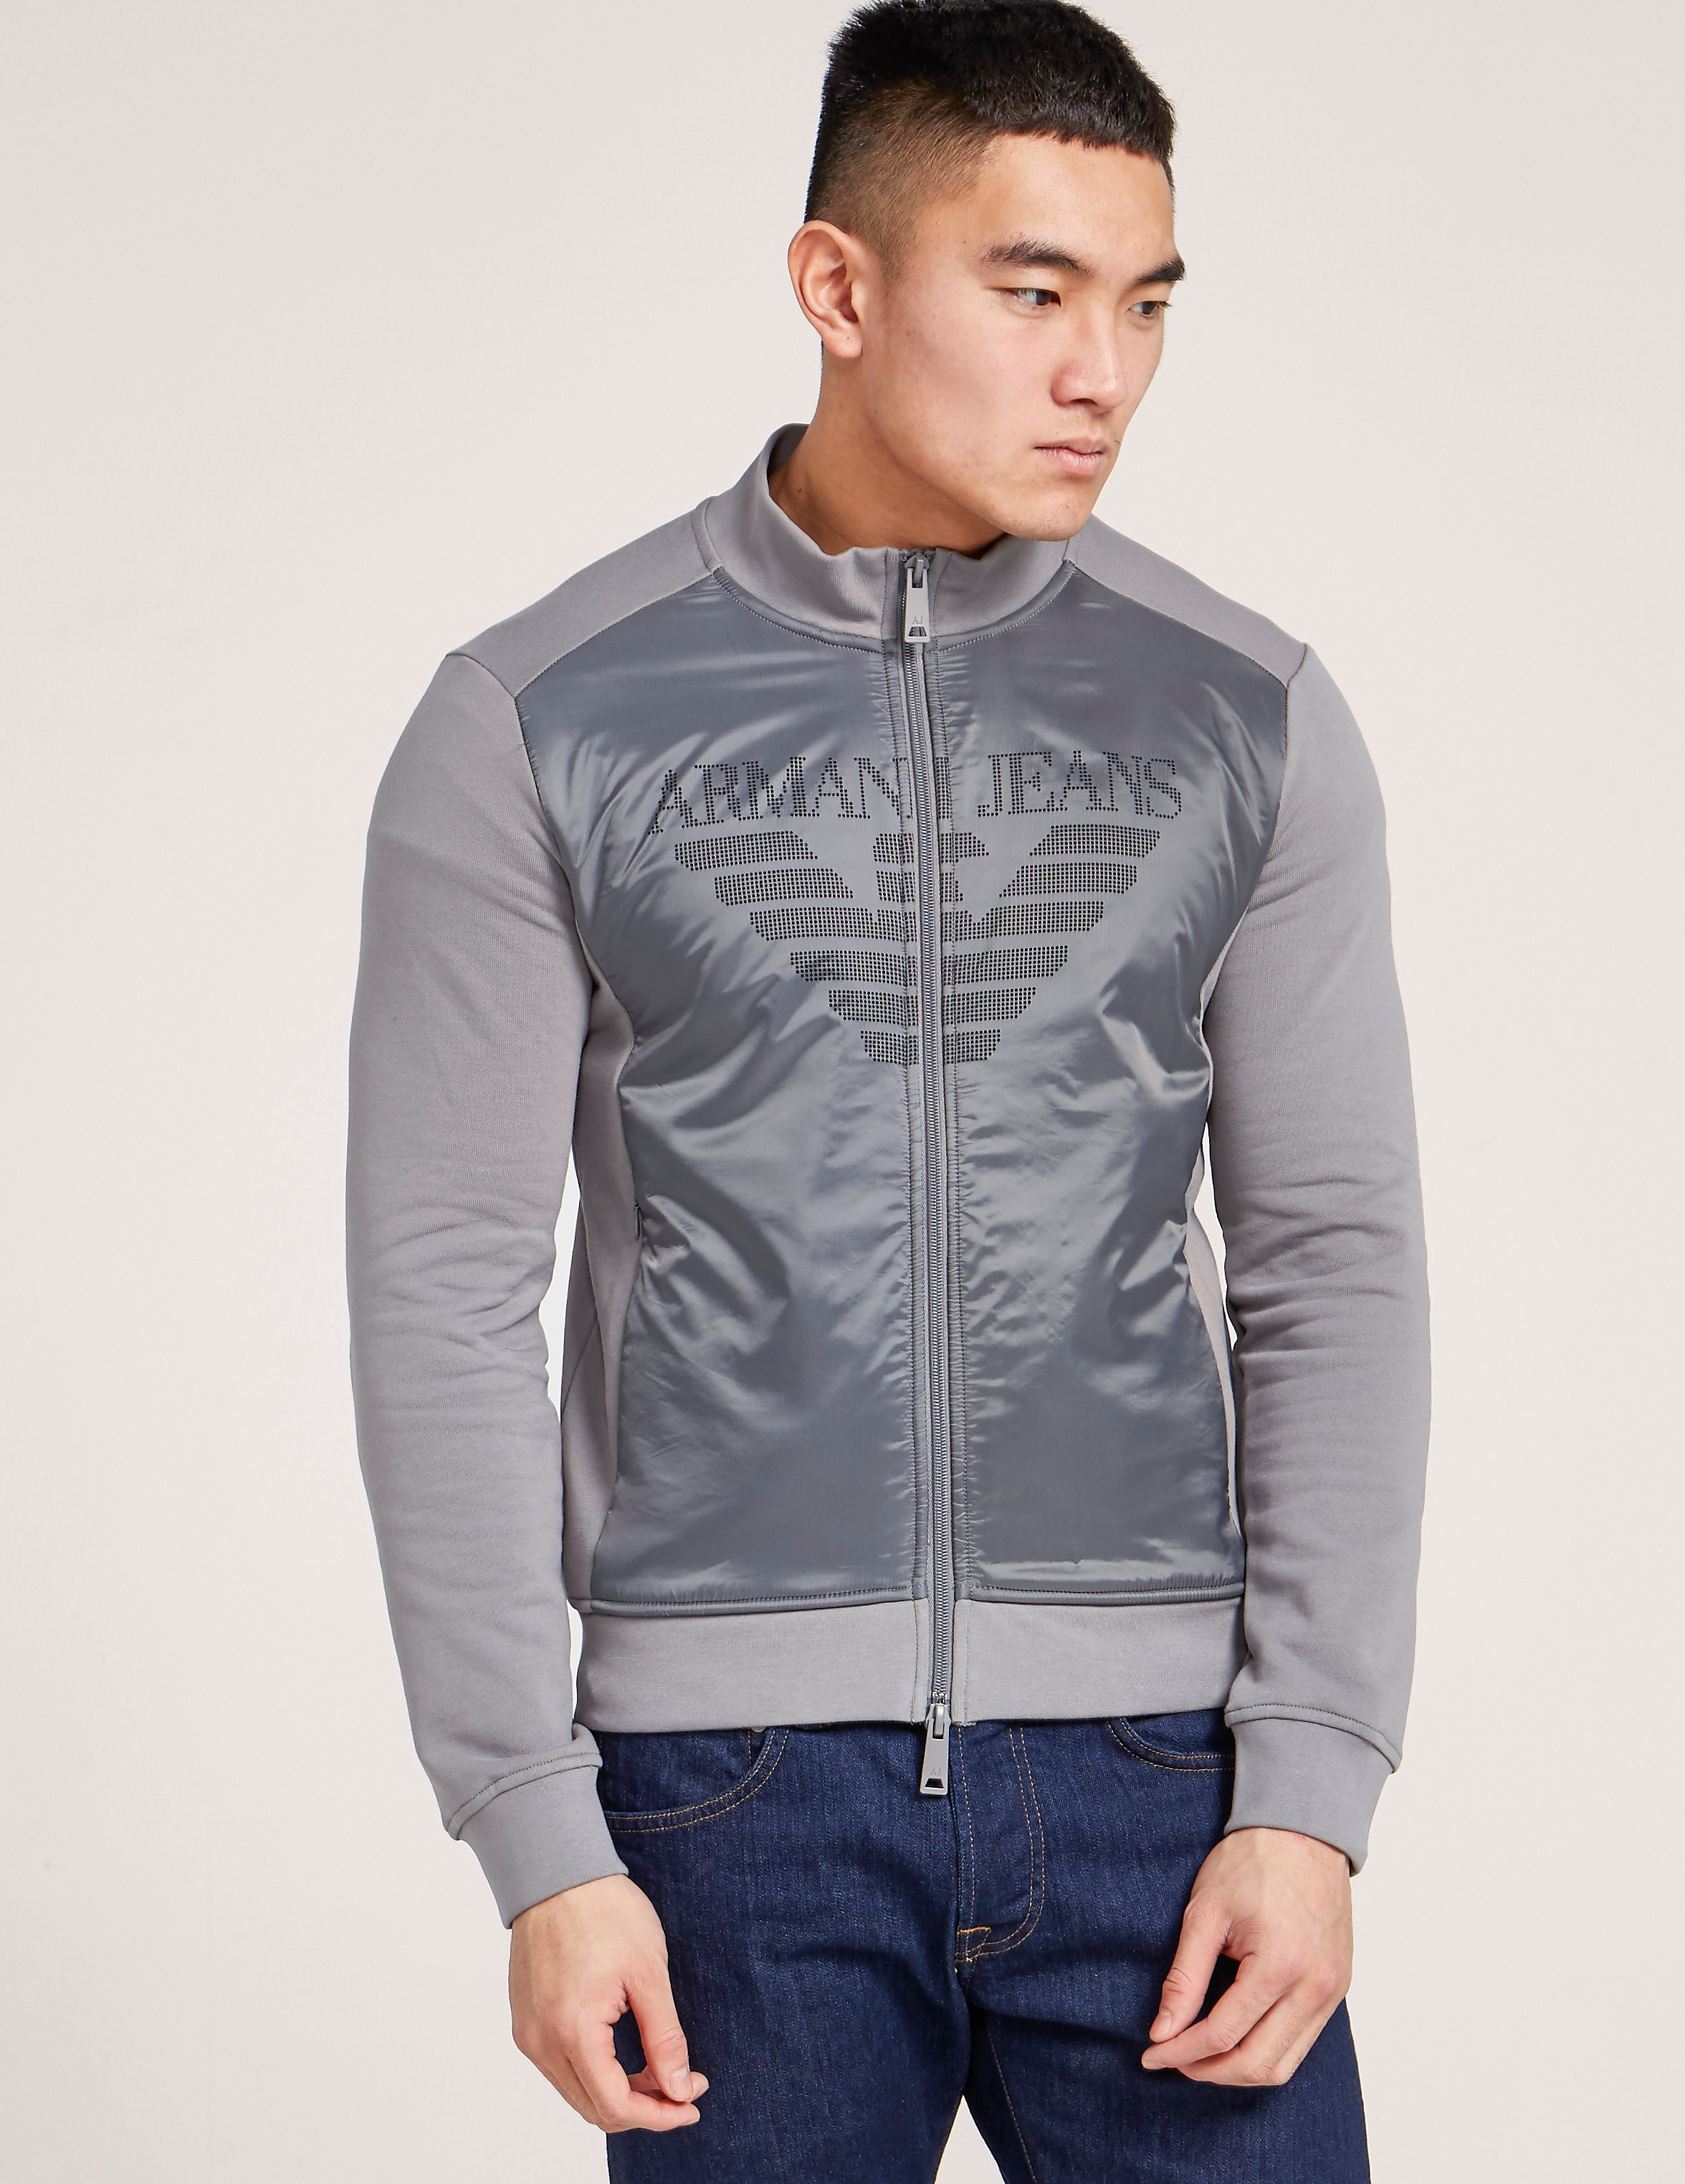 Armani Jeans Nylon Panel Sweatshirt